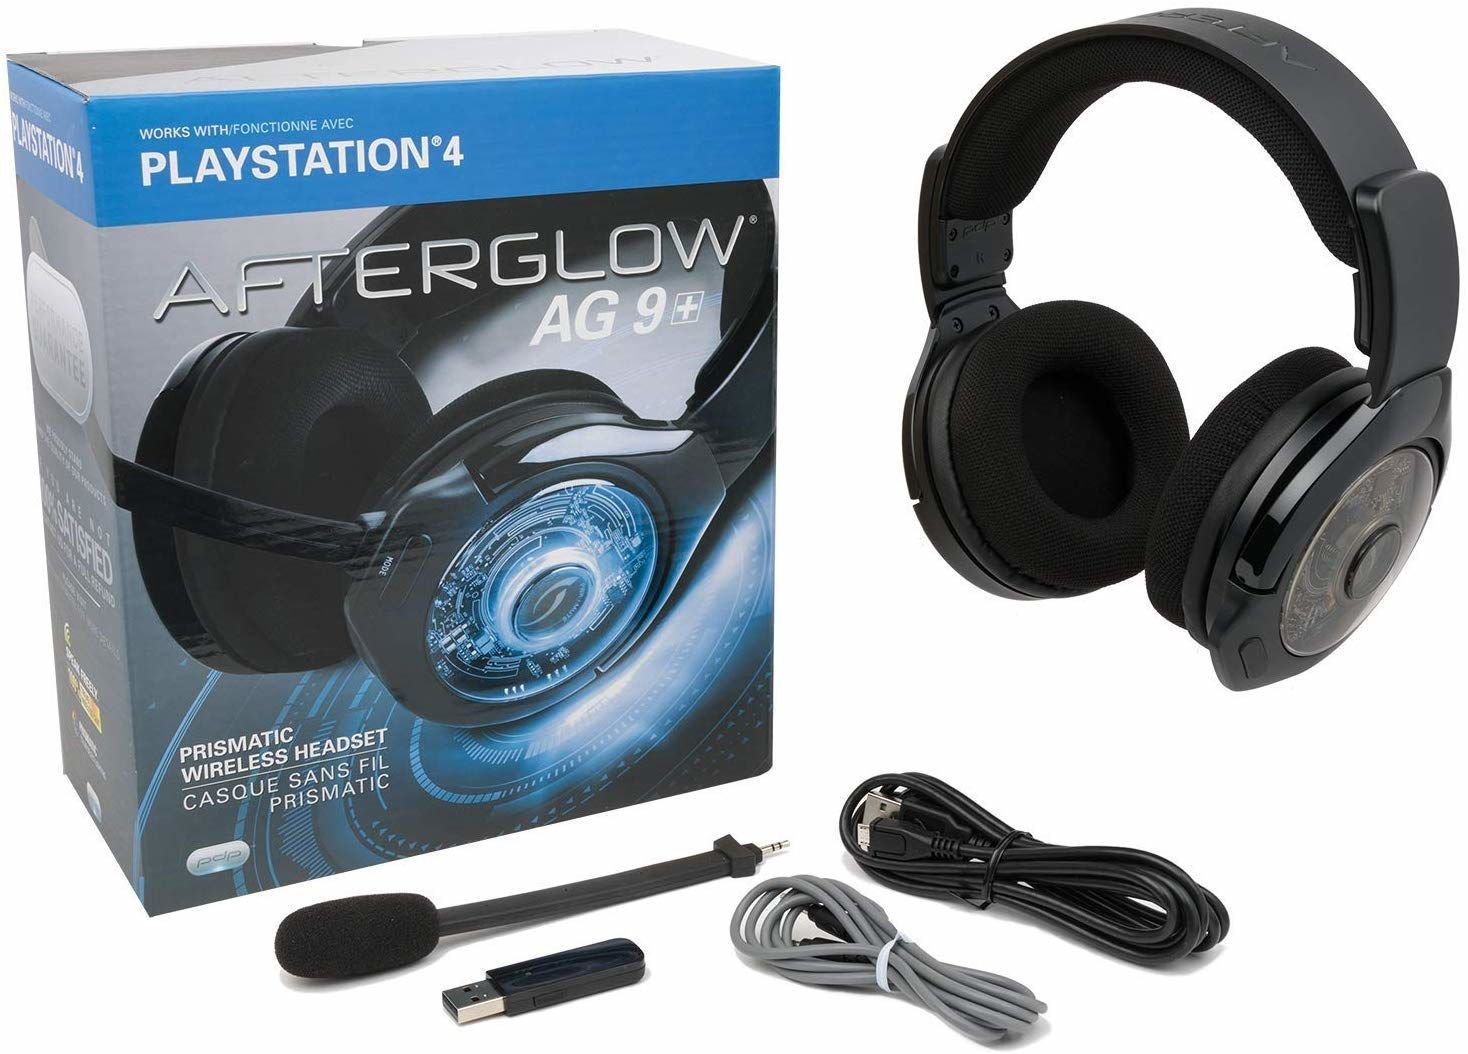 Mobili Per Tv E Stereo.Pdp Afterglow Ag 9 Stereo Wireless Gaming Headset Black